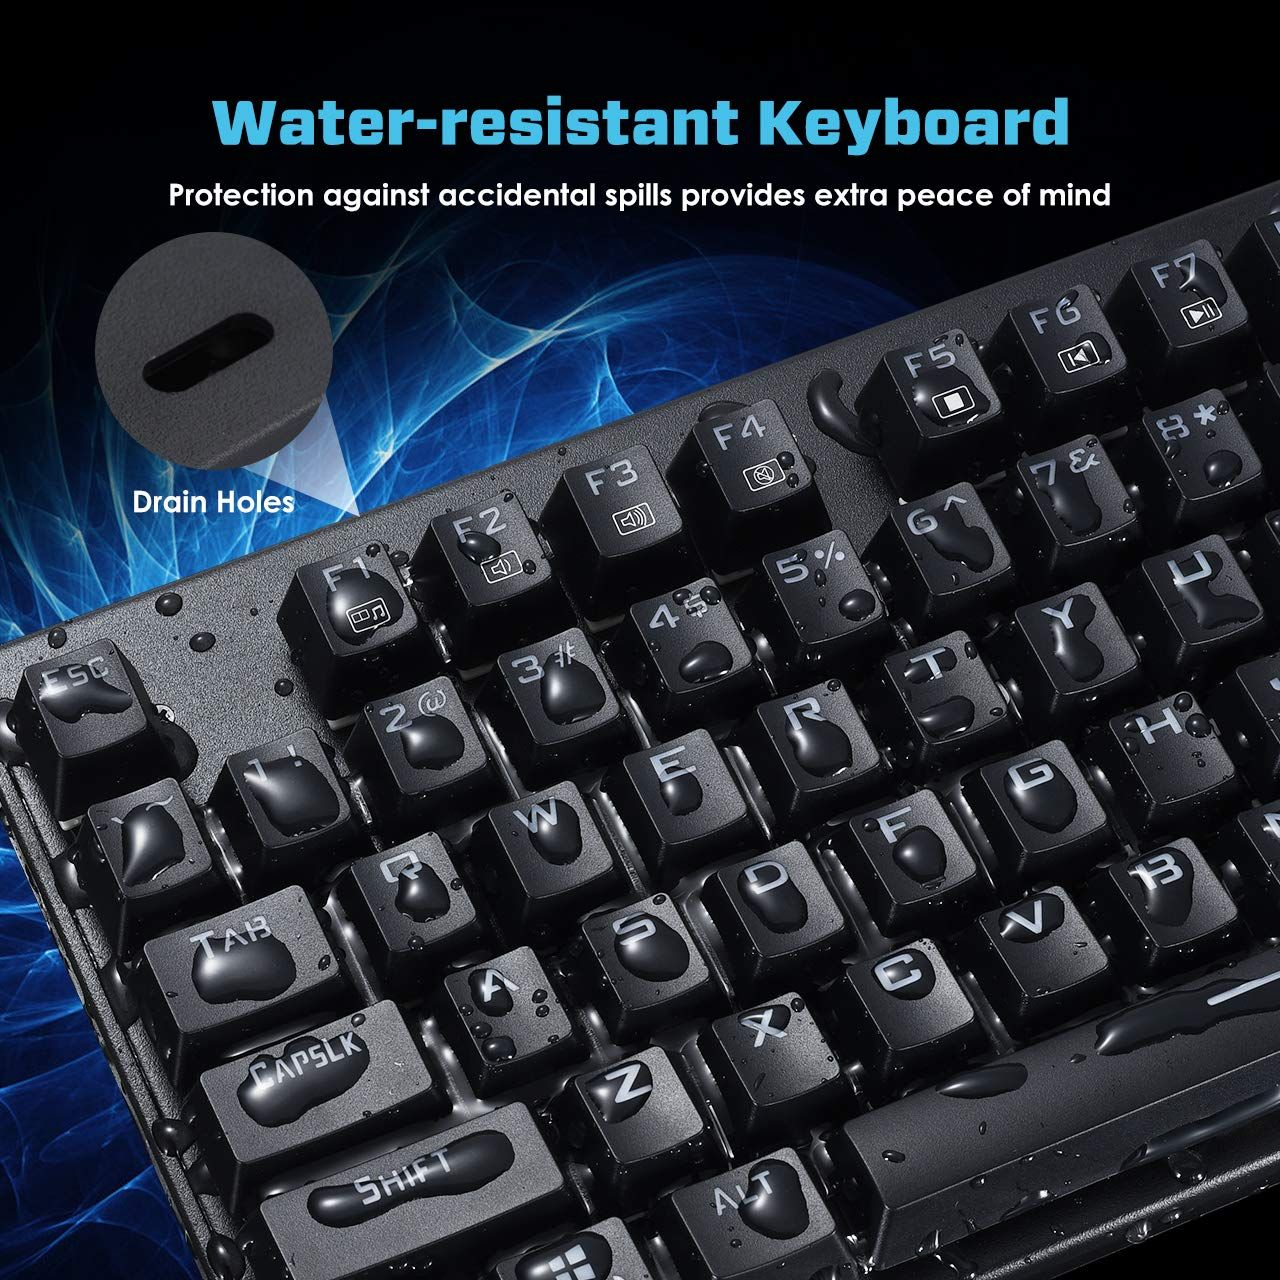 VicTsing Mechanical Gaming Keyboard 87 Keys Keyboard for Desktop Computer Attached Key Puller-Black Wired Gaming keyboard with Blue Switch